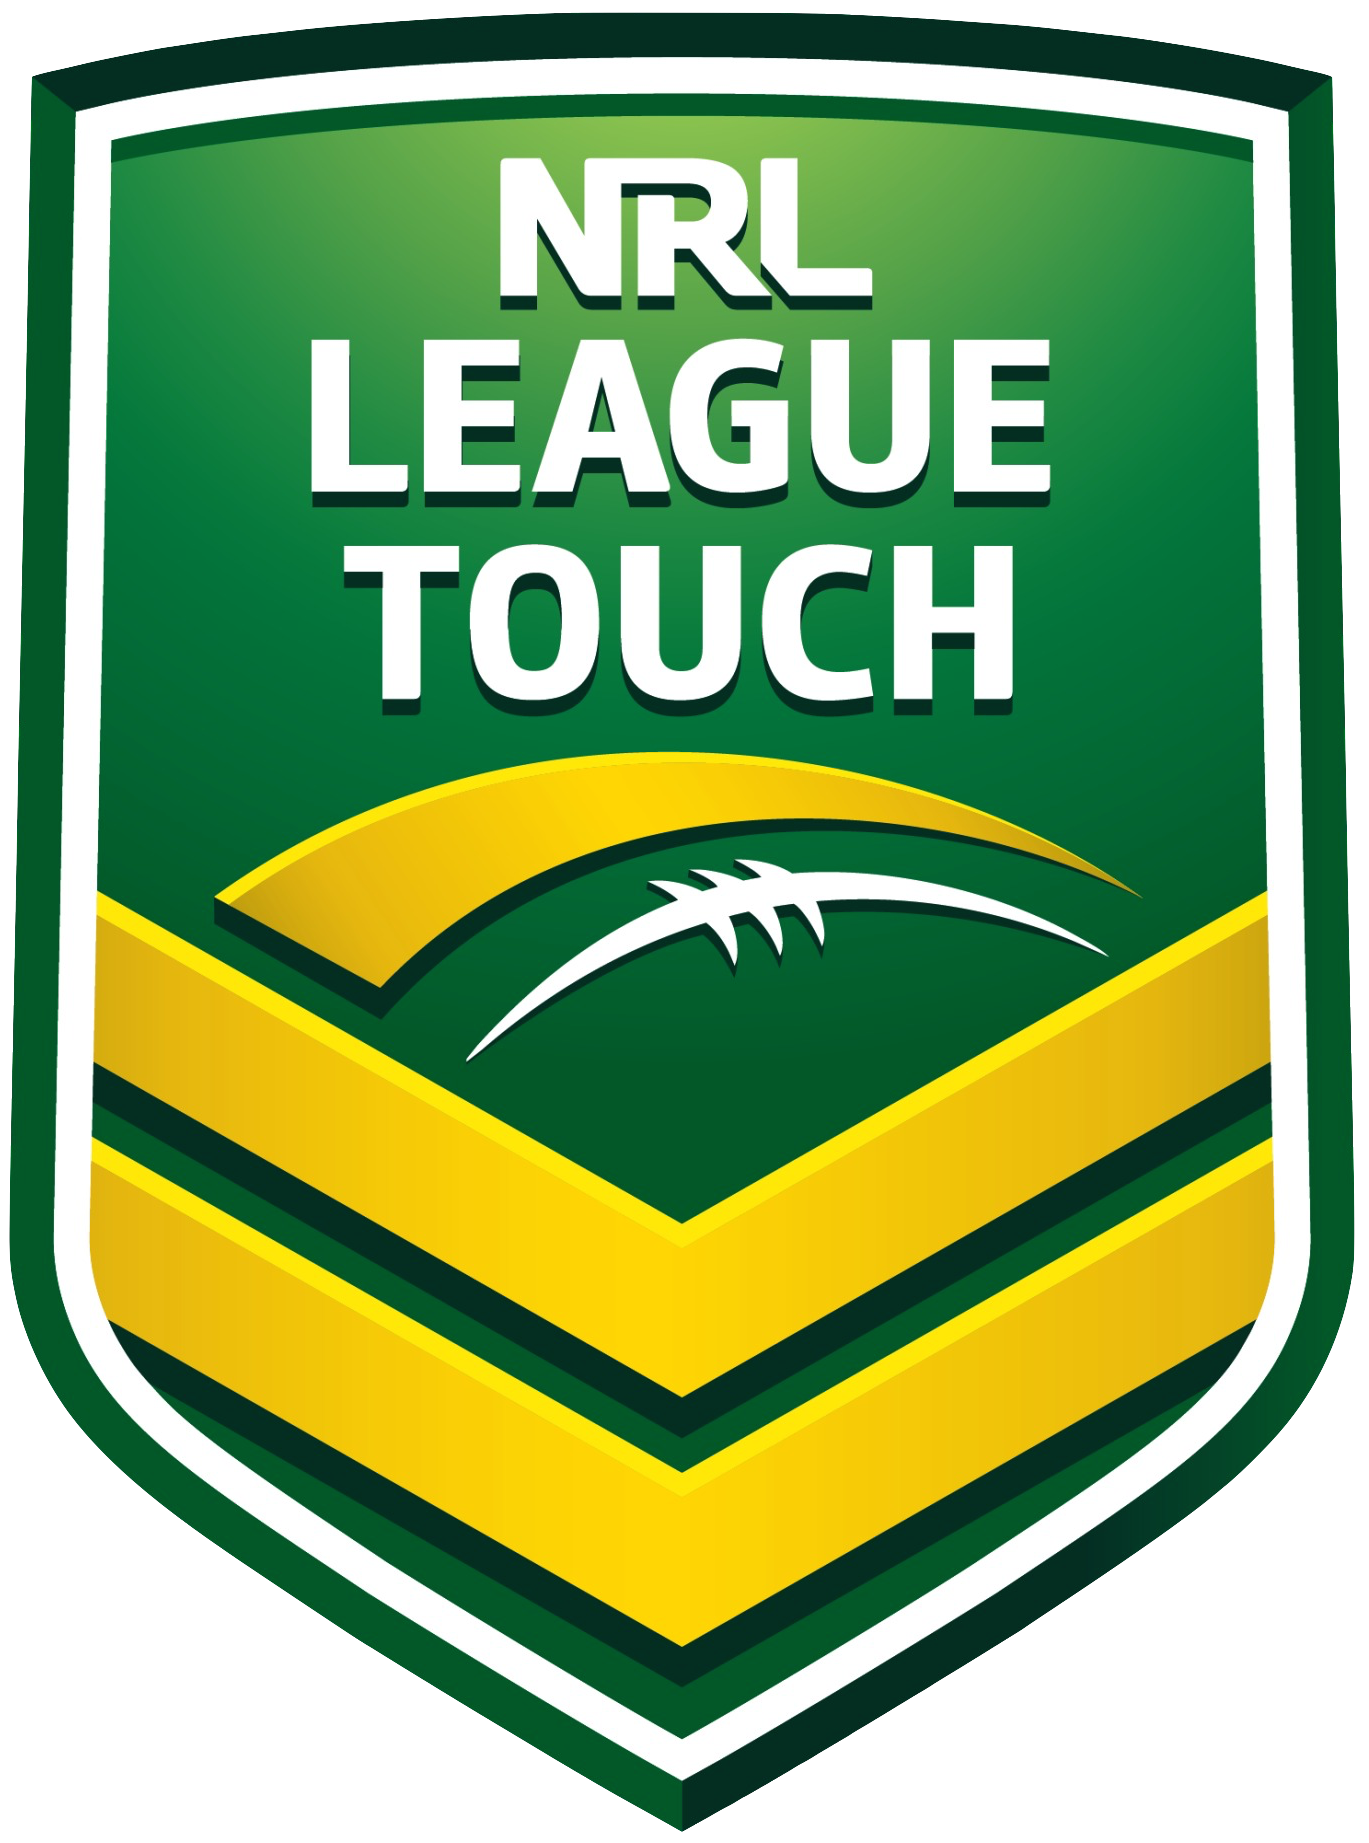 NRL League Touch